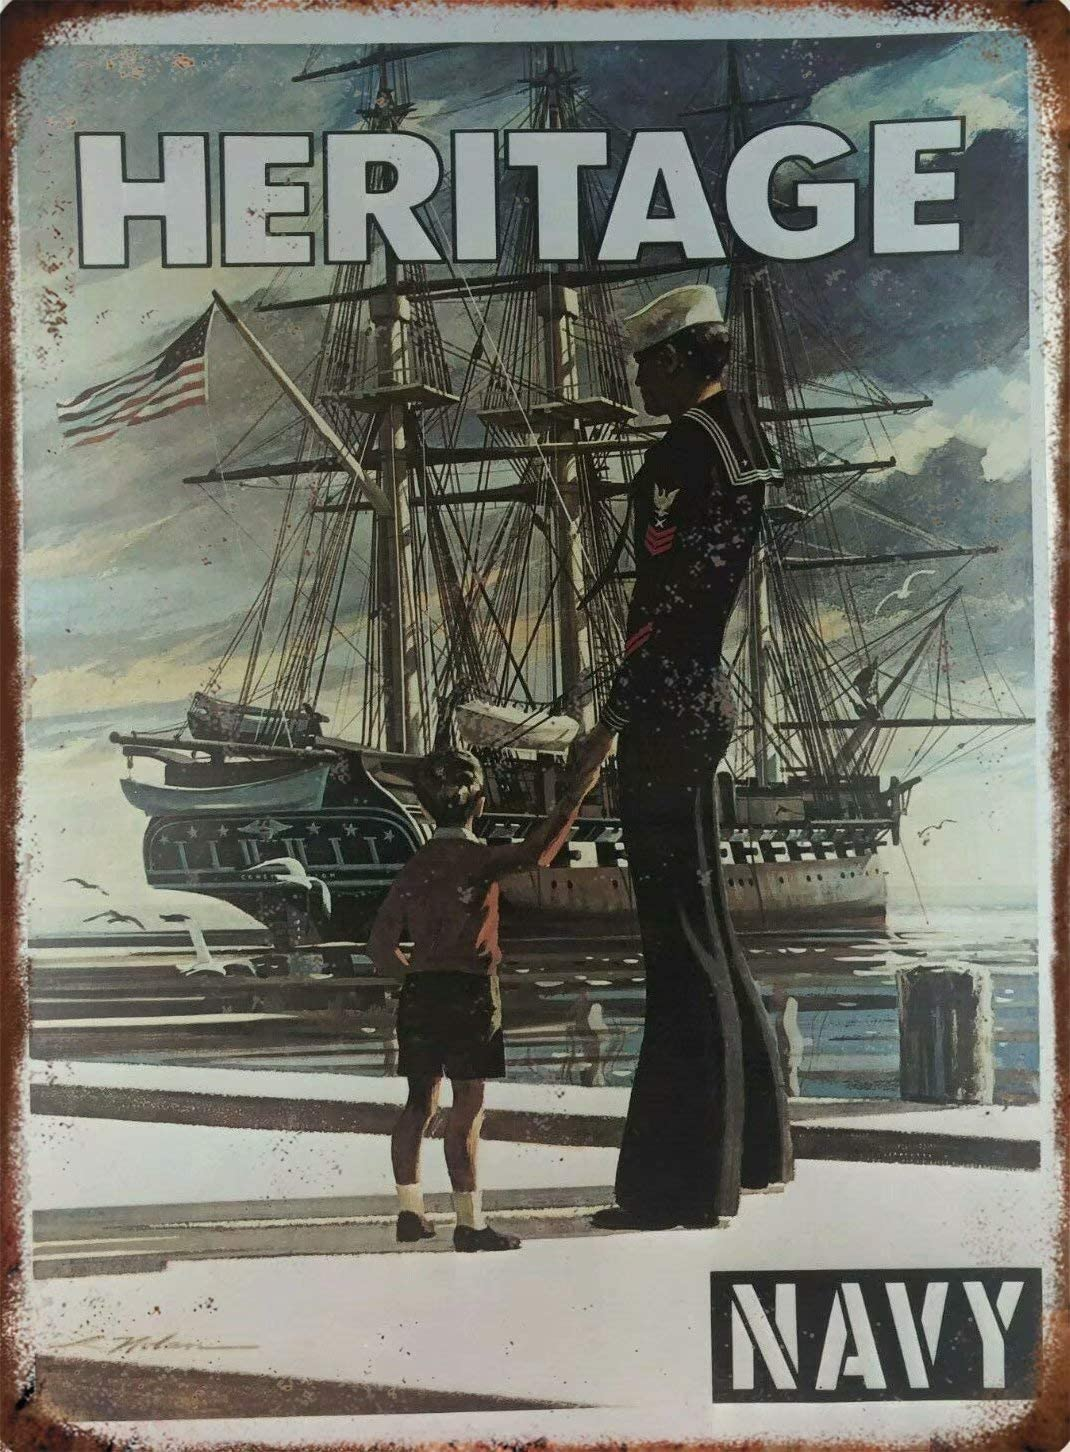 """Vintage 1973 Navy Recruiting Paper Poster 'Heritage' 8""""X12"""" Military Sign Military Fan Sign Memorial Sign Home Man Cave Decor Metal Tin Sign Wall Sign JSS-25"""